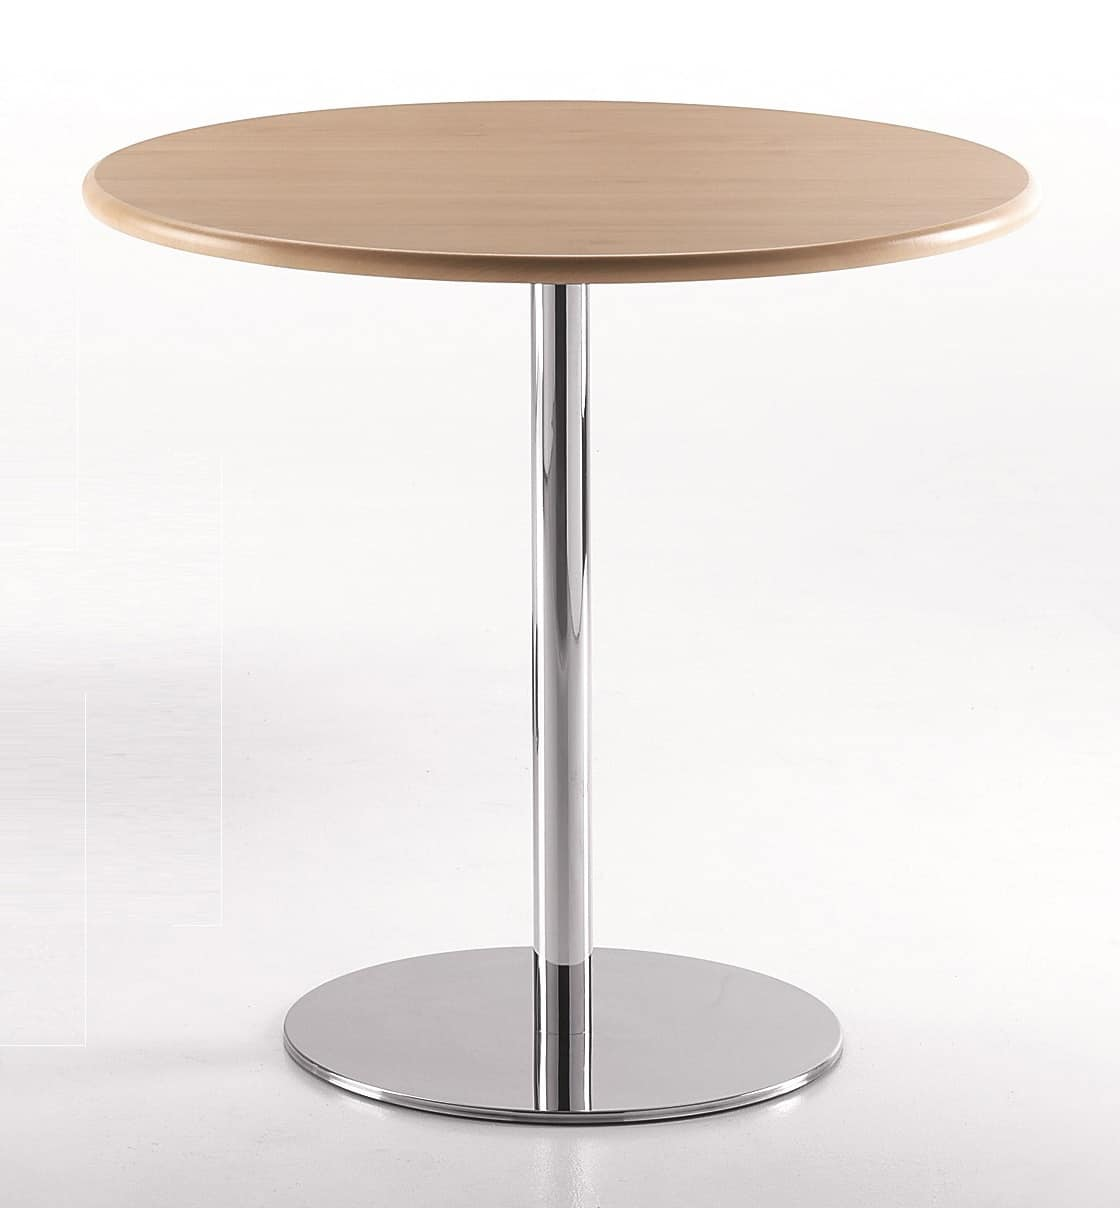 BASIC 856, Round table with chrome metal base